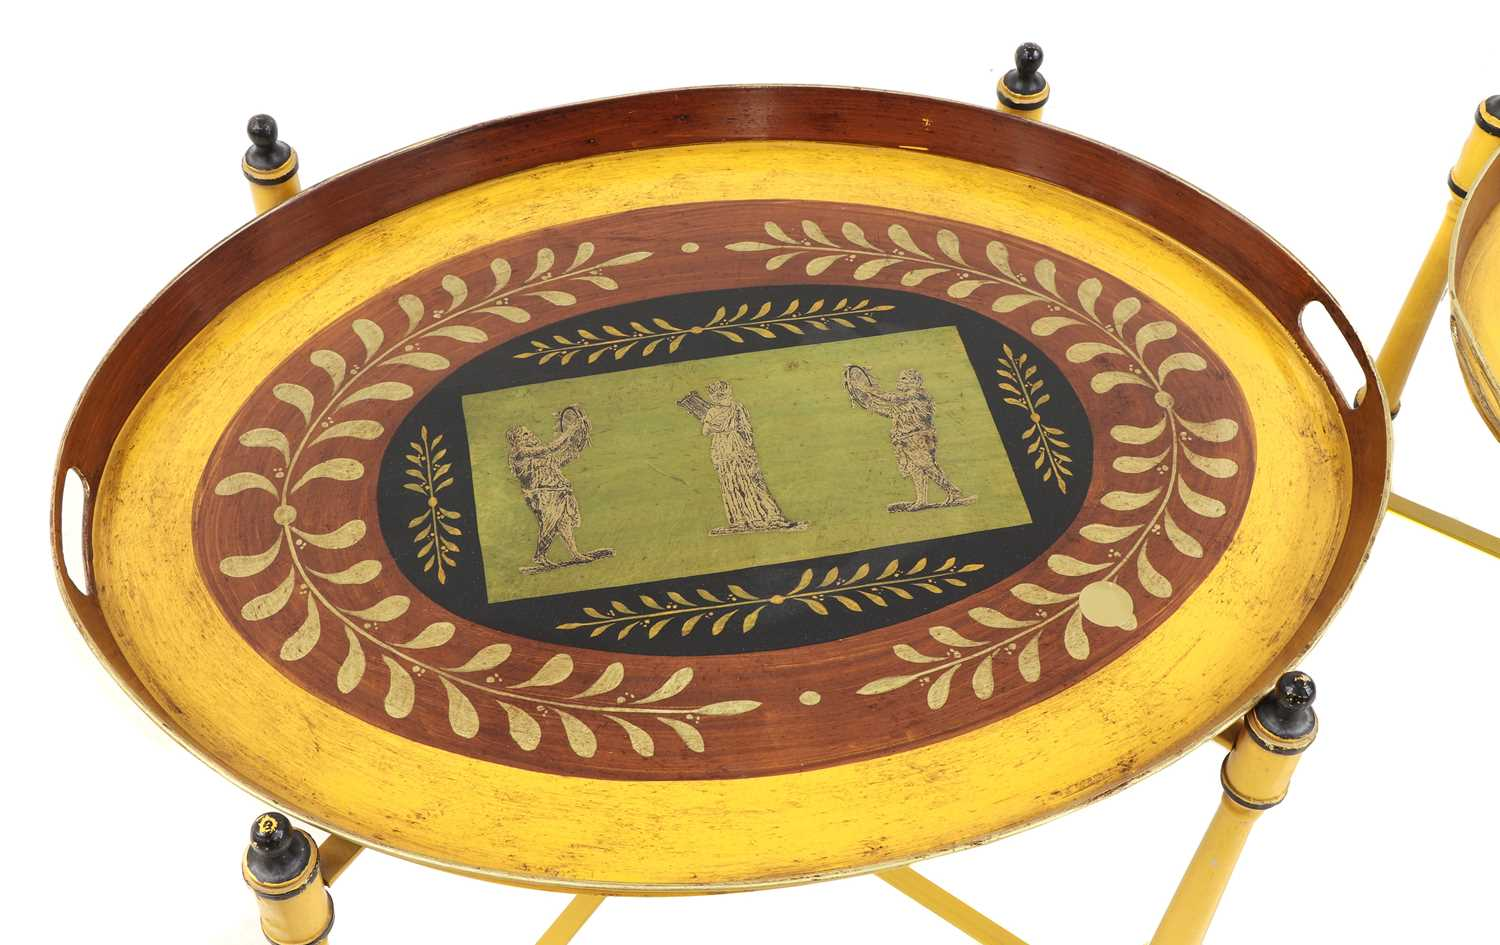 A pair of Regency-style yellow-painted toleware side tables, - Image 3 of 4